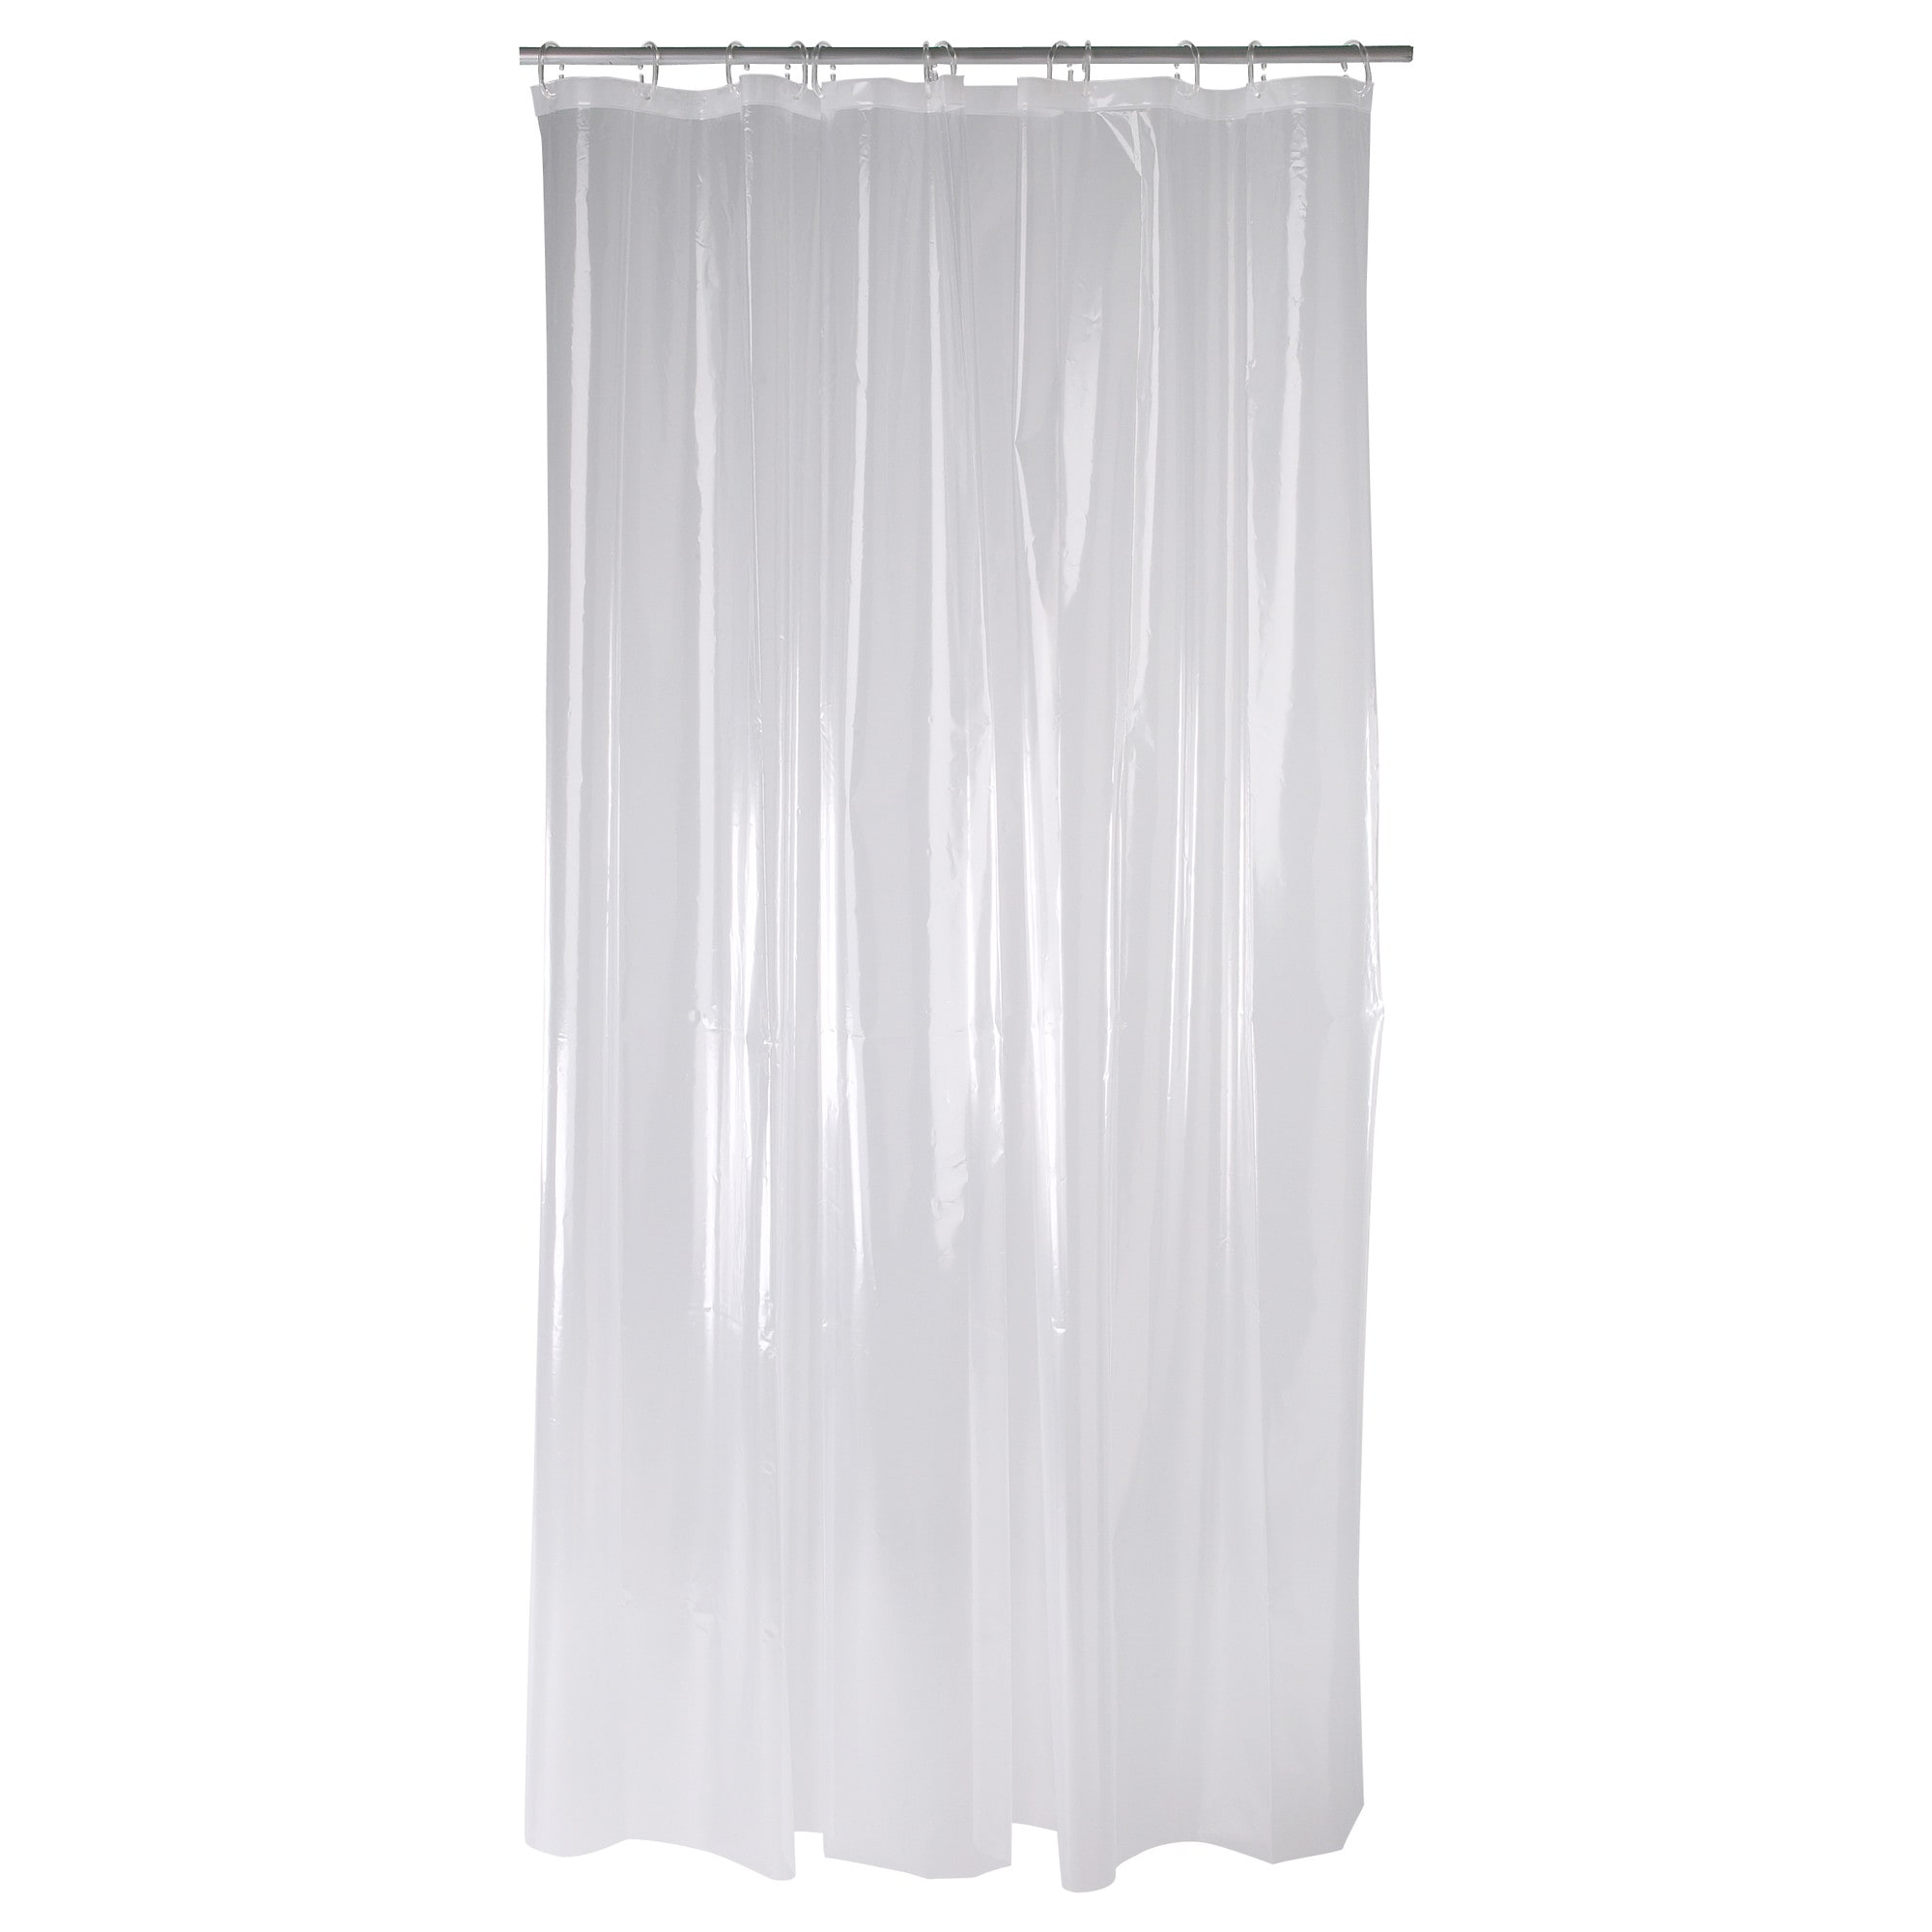 shower curtains rods ikea nAckten shower curtain clear length 71